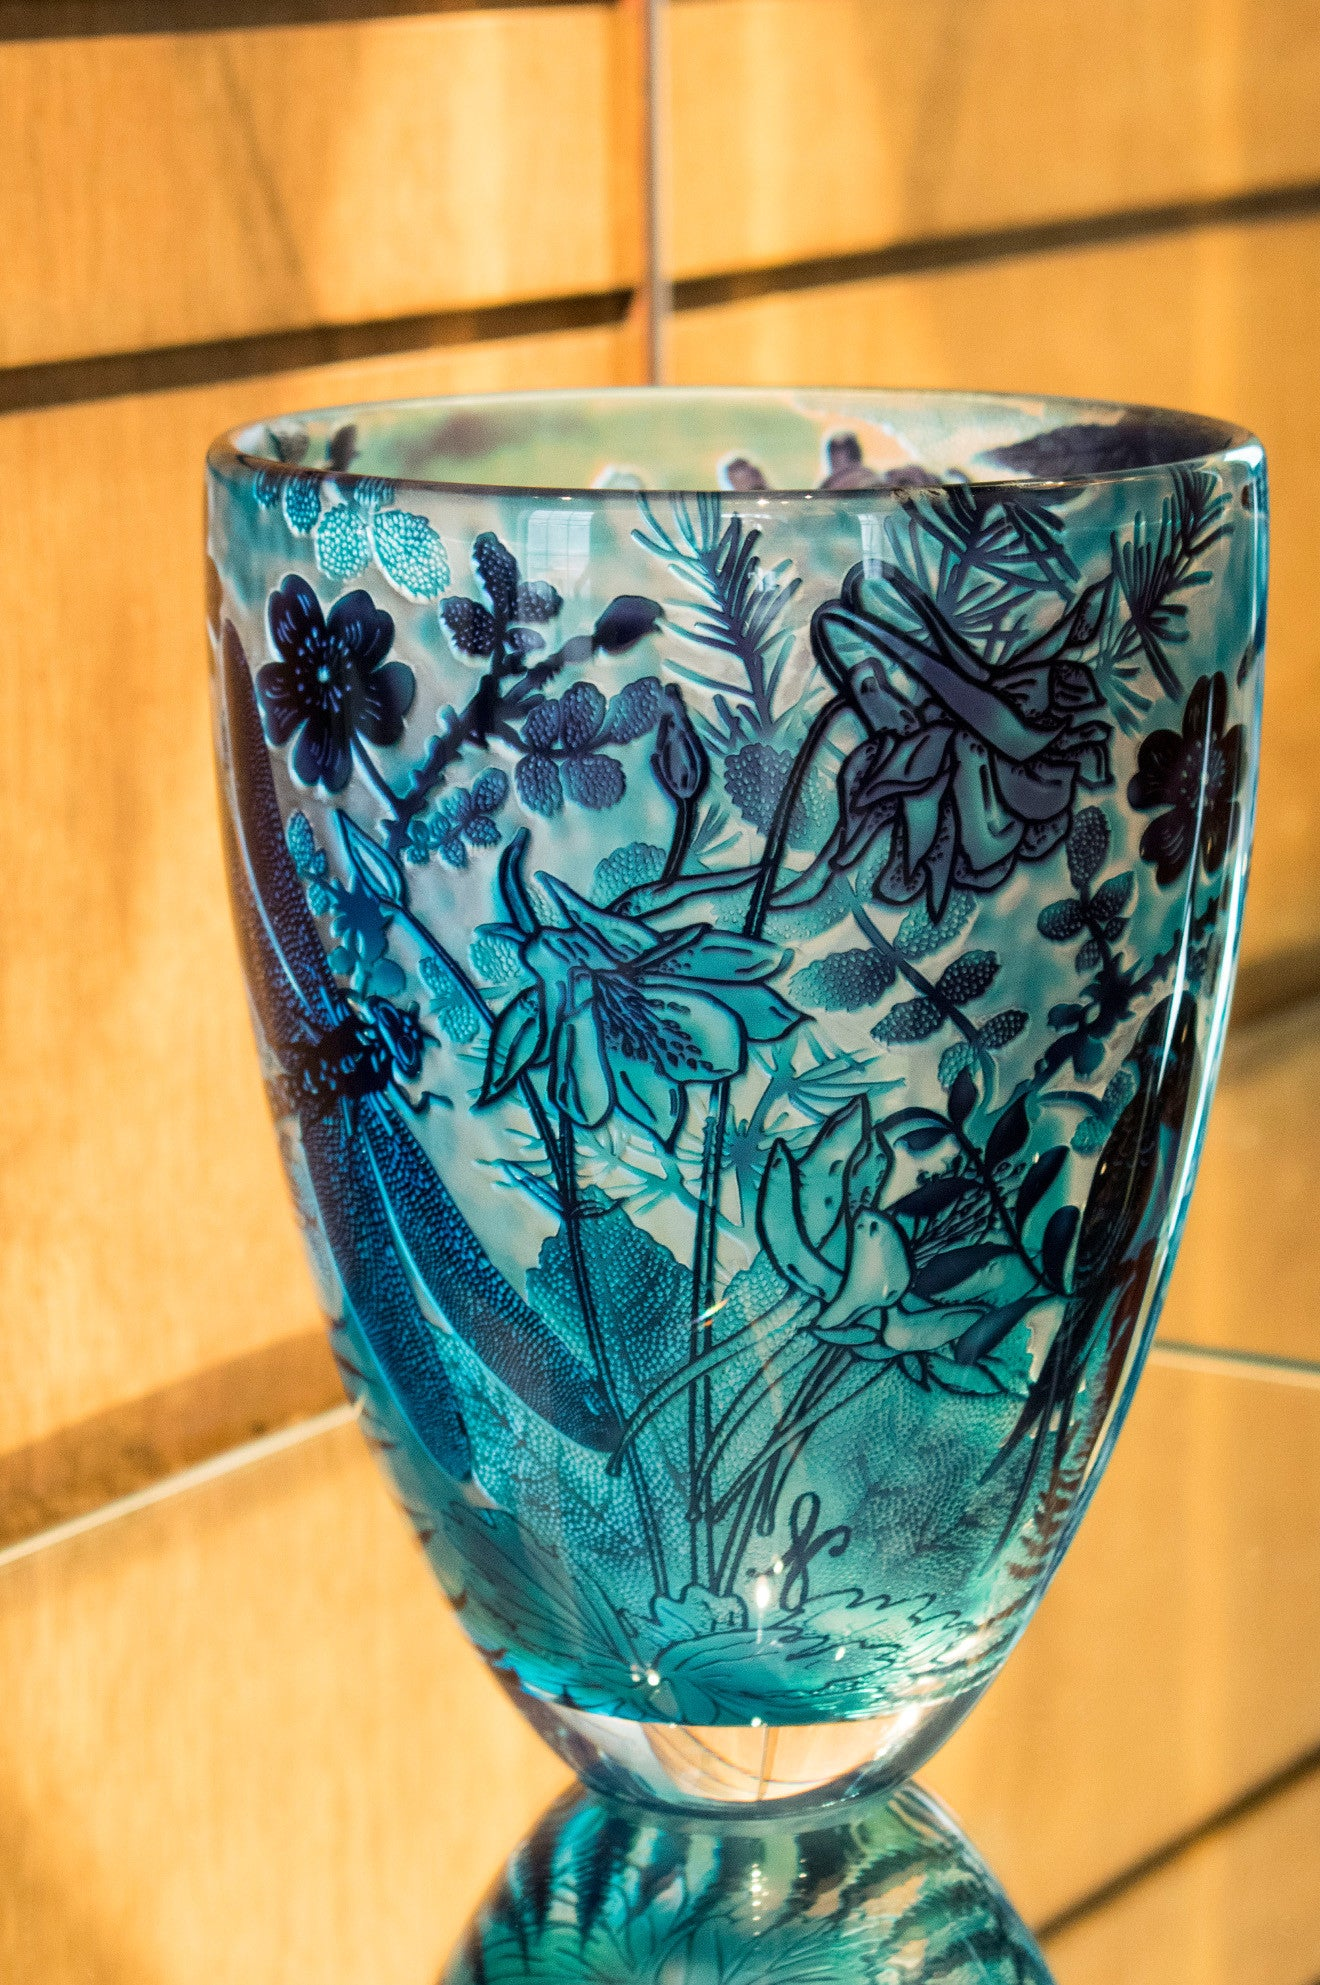 Jonathan Harris Winter etched vase